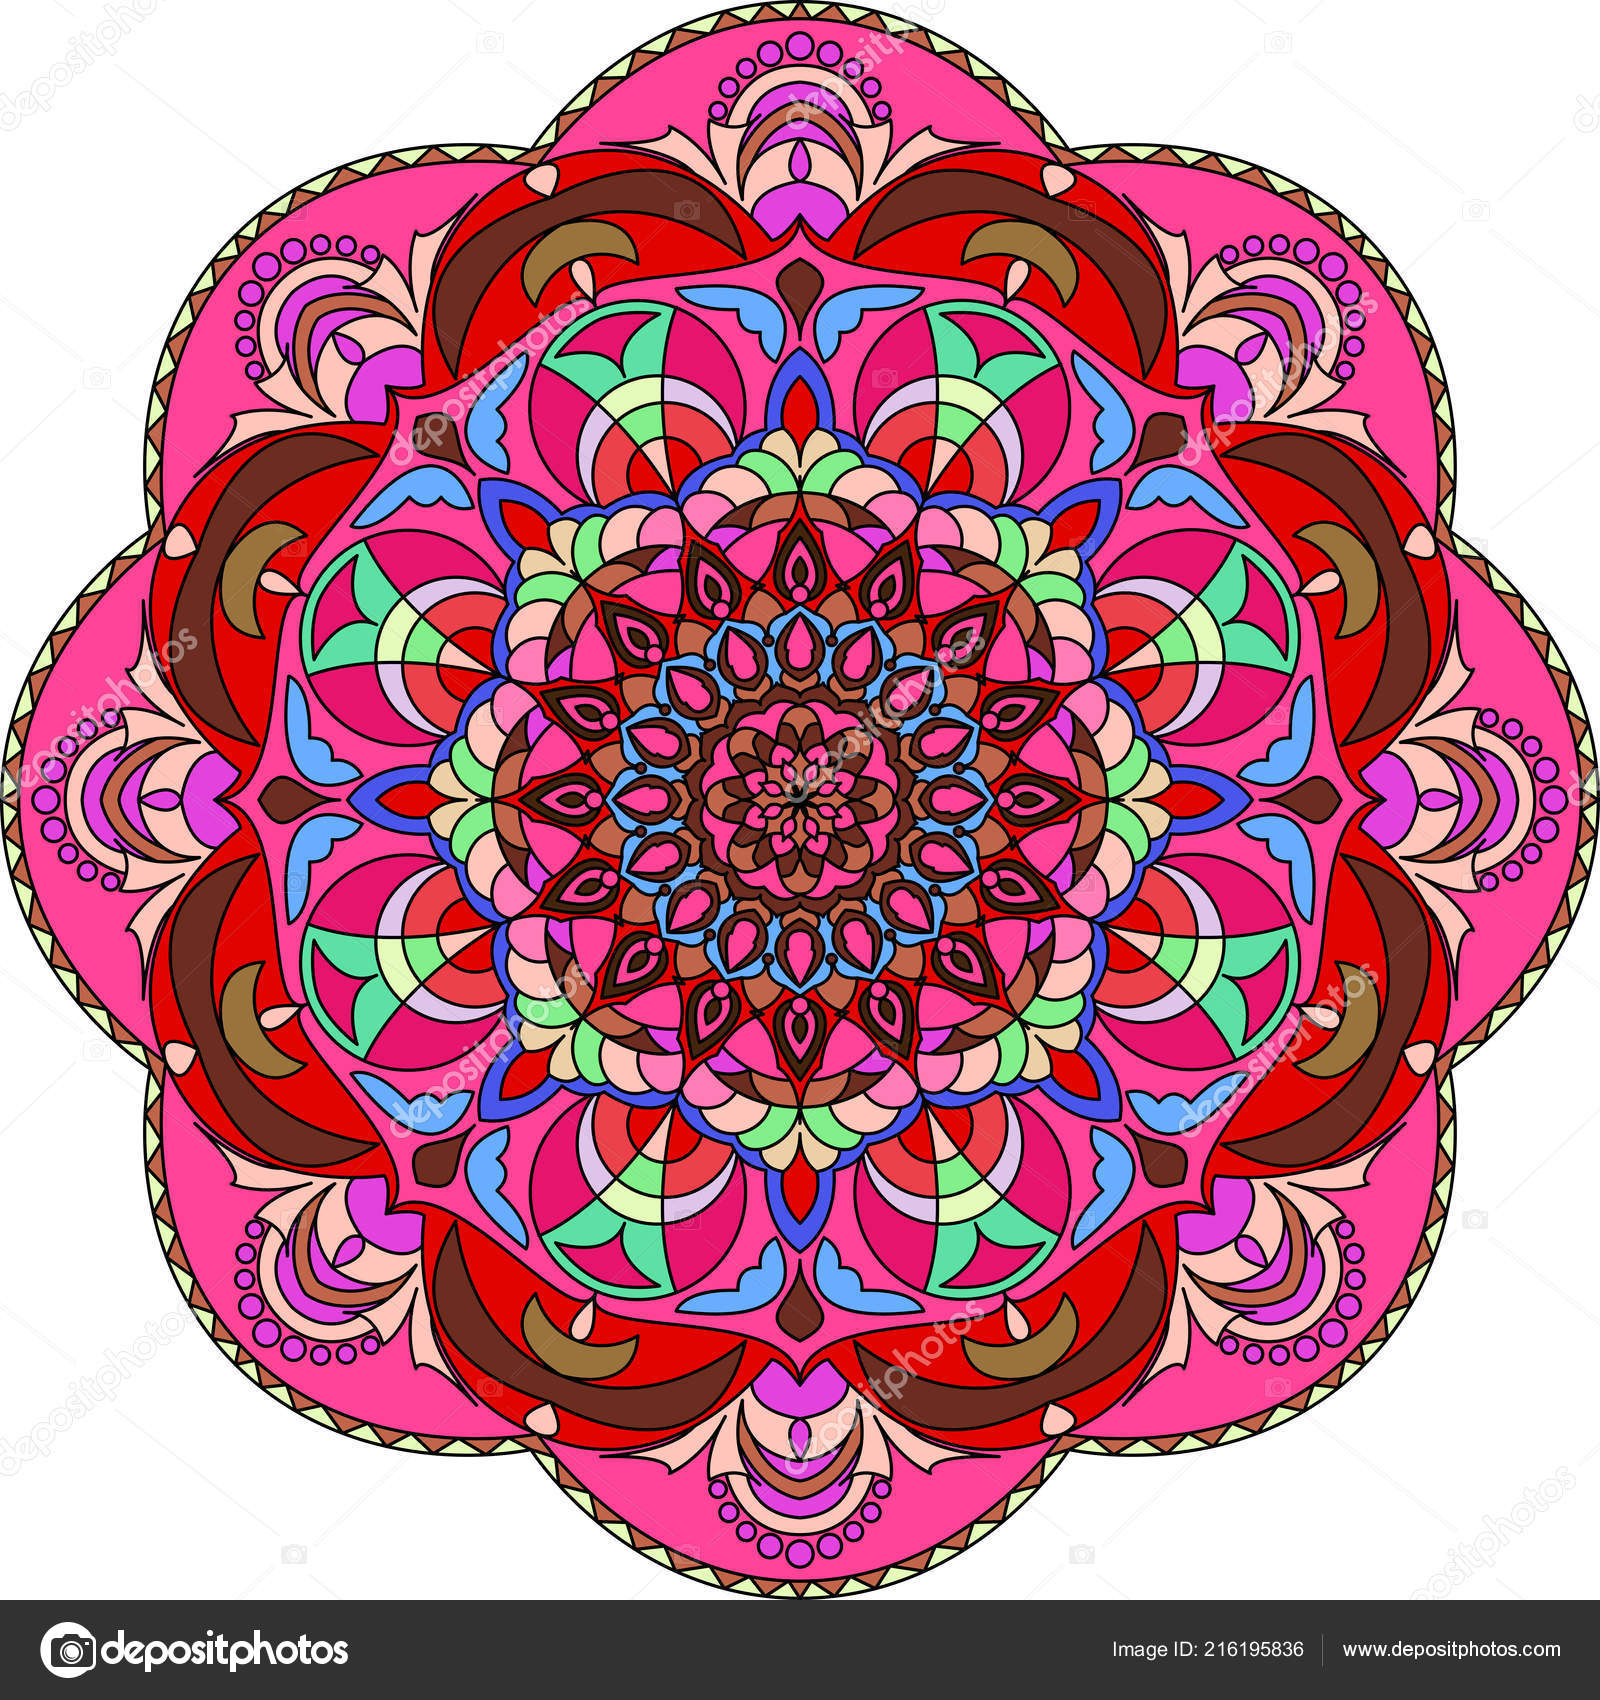 Colorful Mandala Coloring Book Decorative Ornaments Stress ...